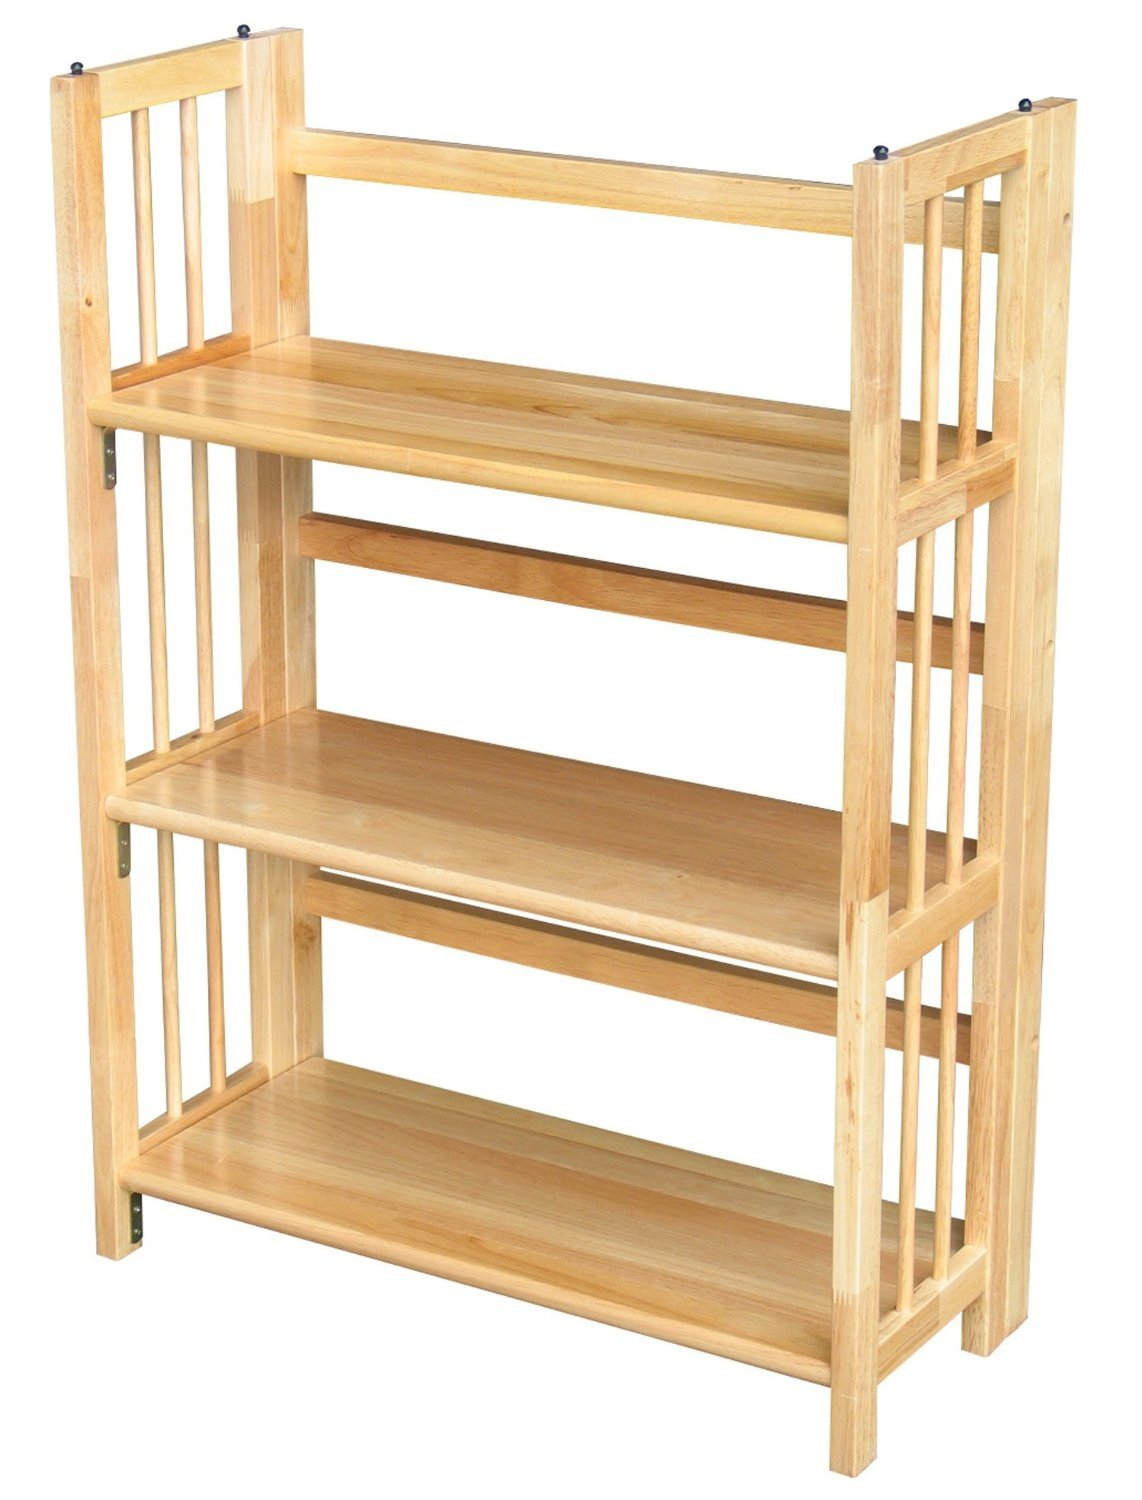 3-Shelf Folding Bookcase Storage Shelves in Natural Wood Finish